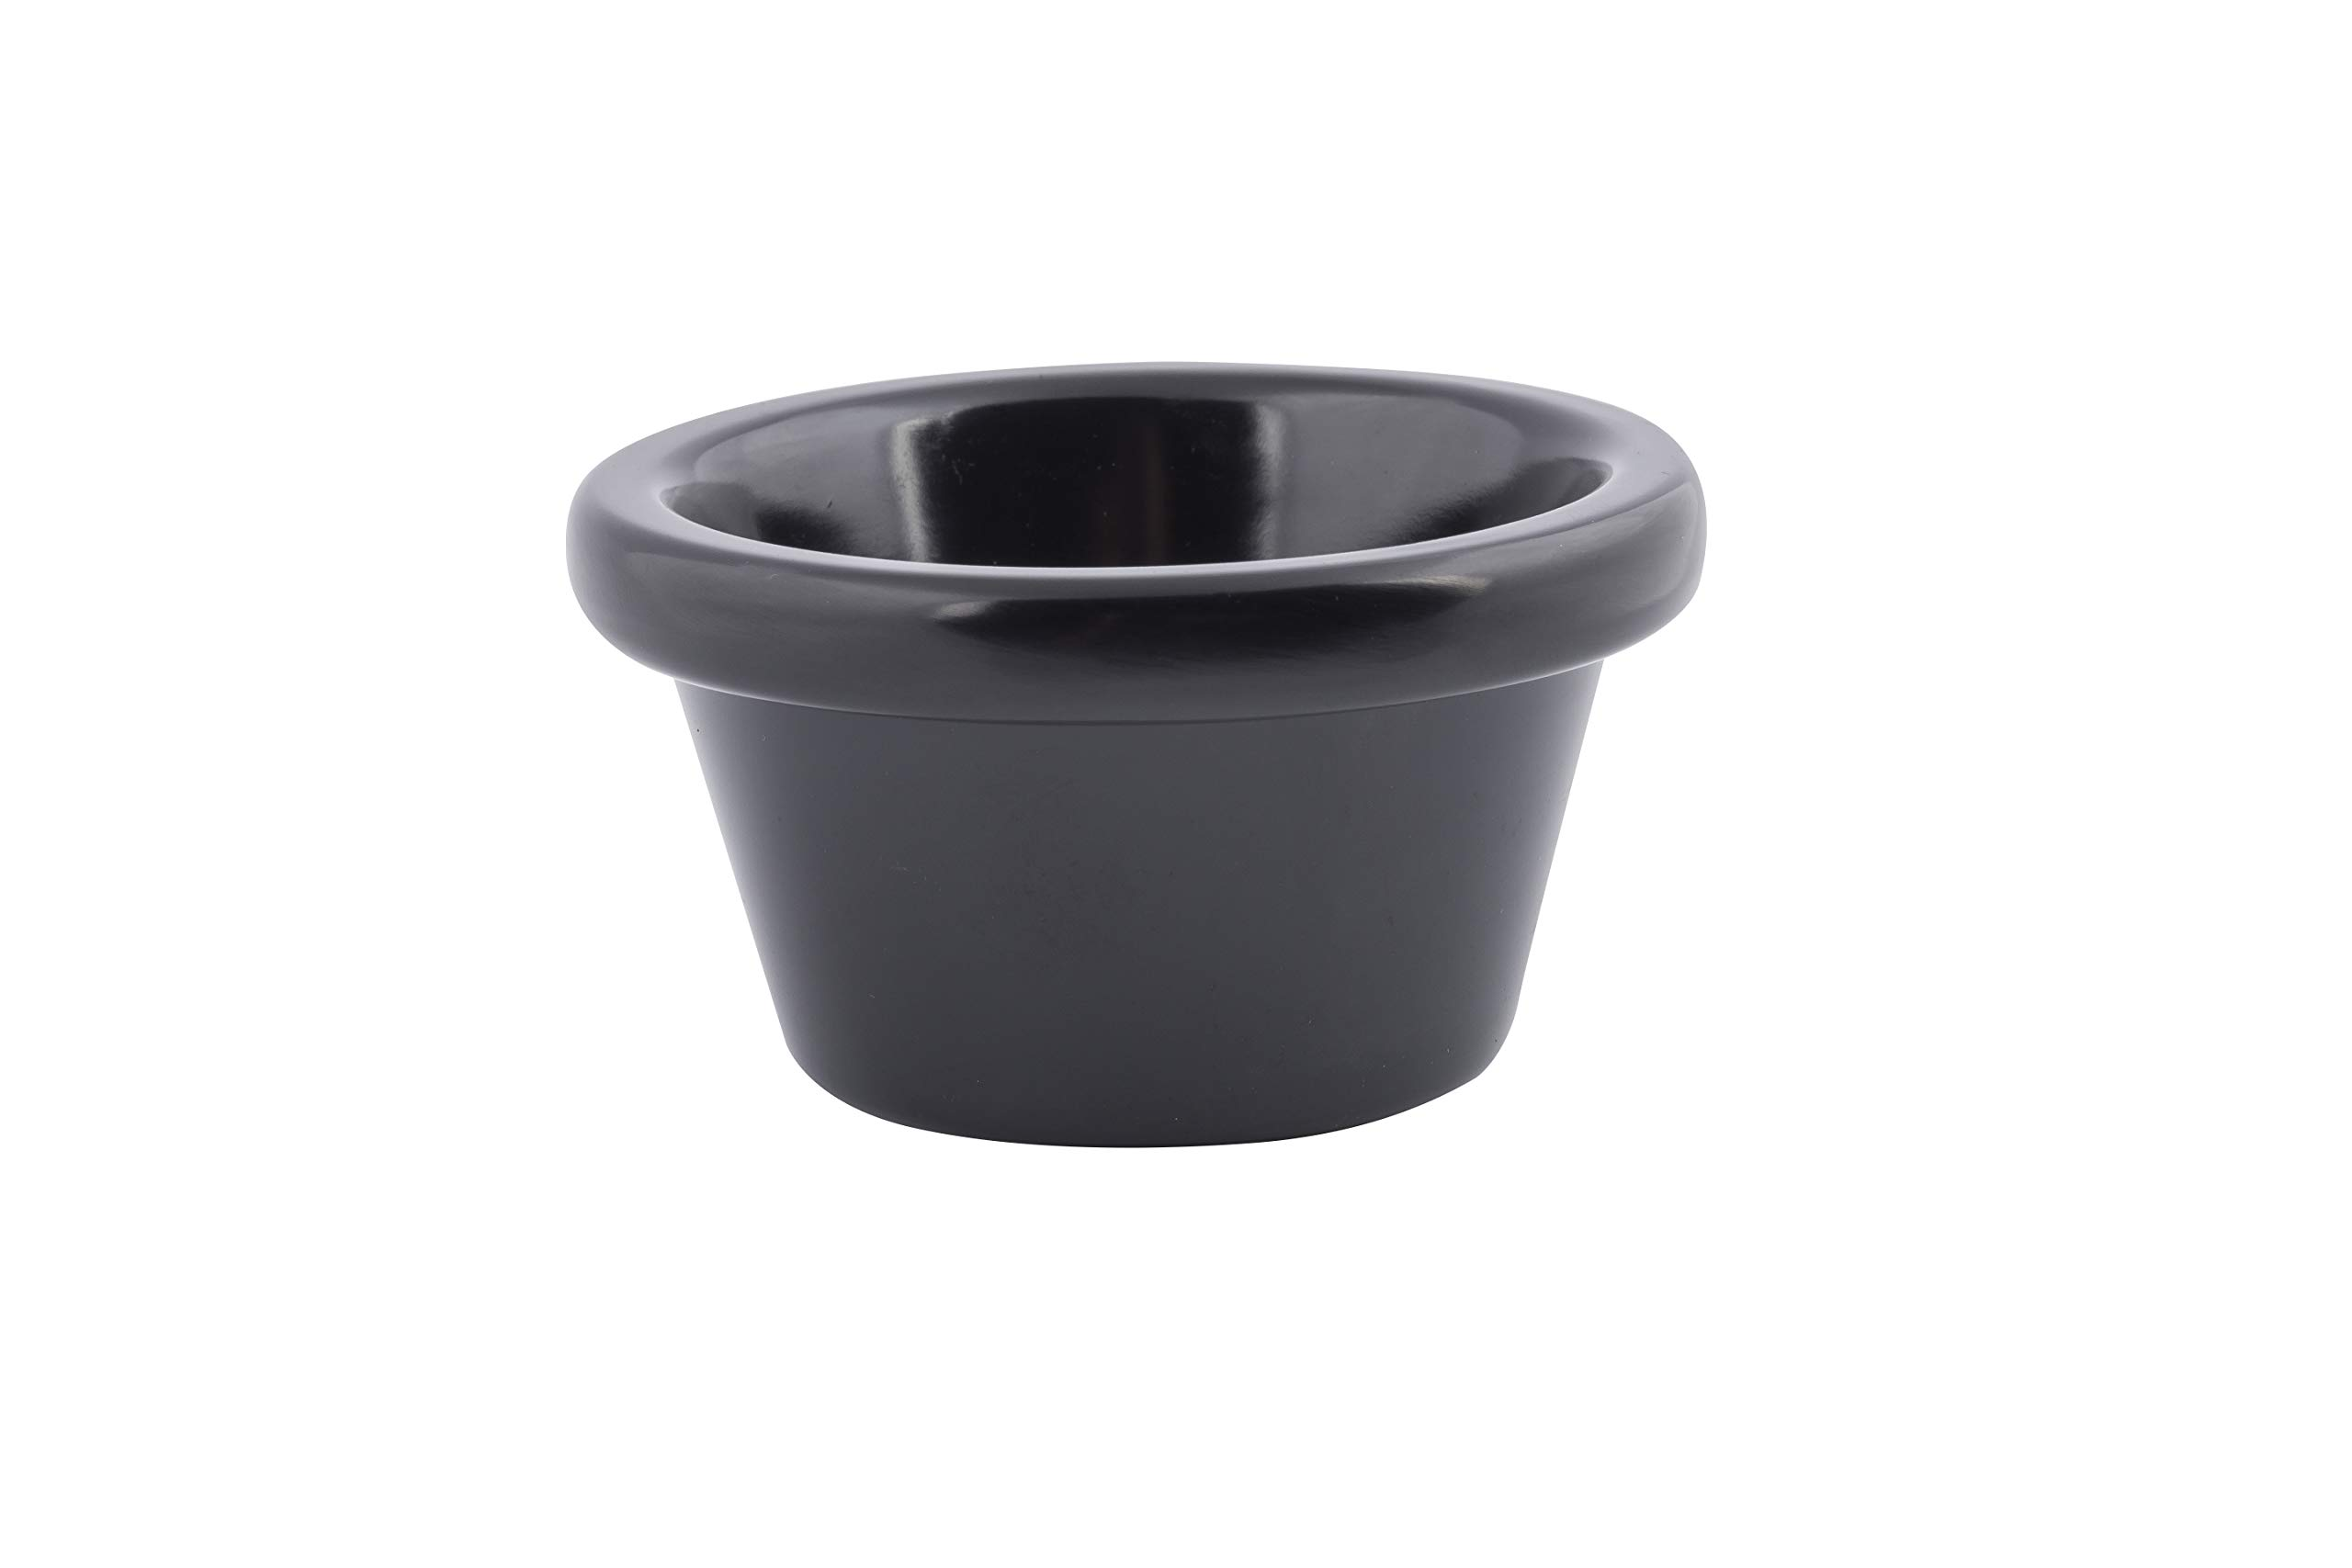 TableCraft Products RAM3BK 3 oz./89 mL Black Melamine Ramekin (Pack of 12)